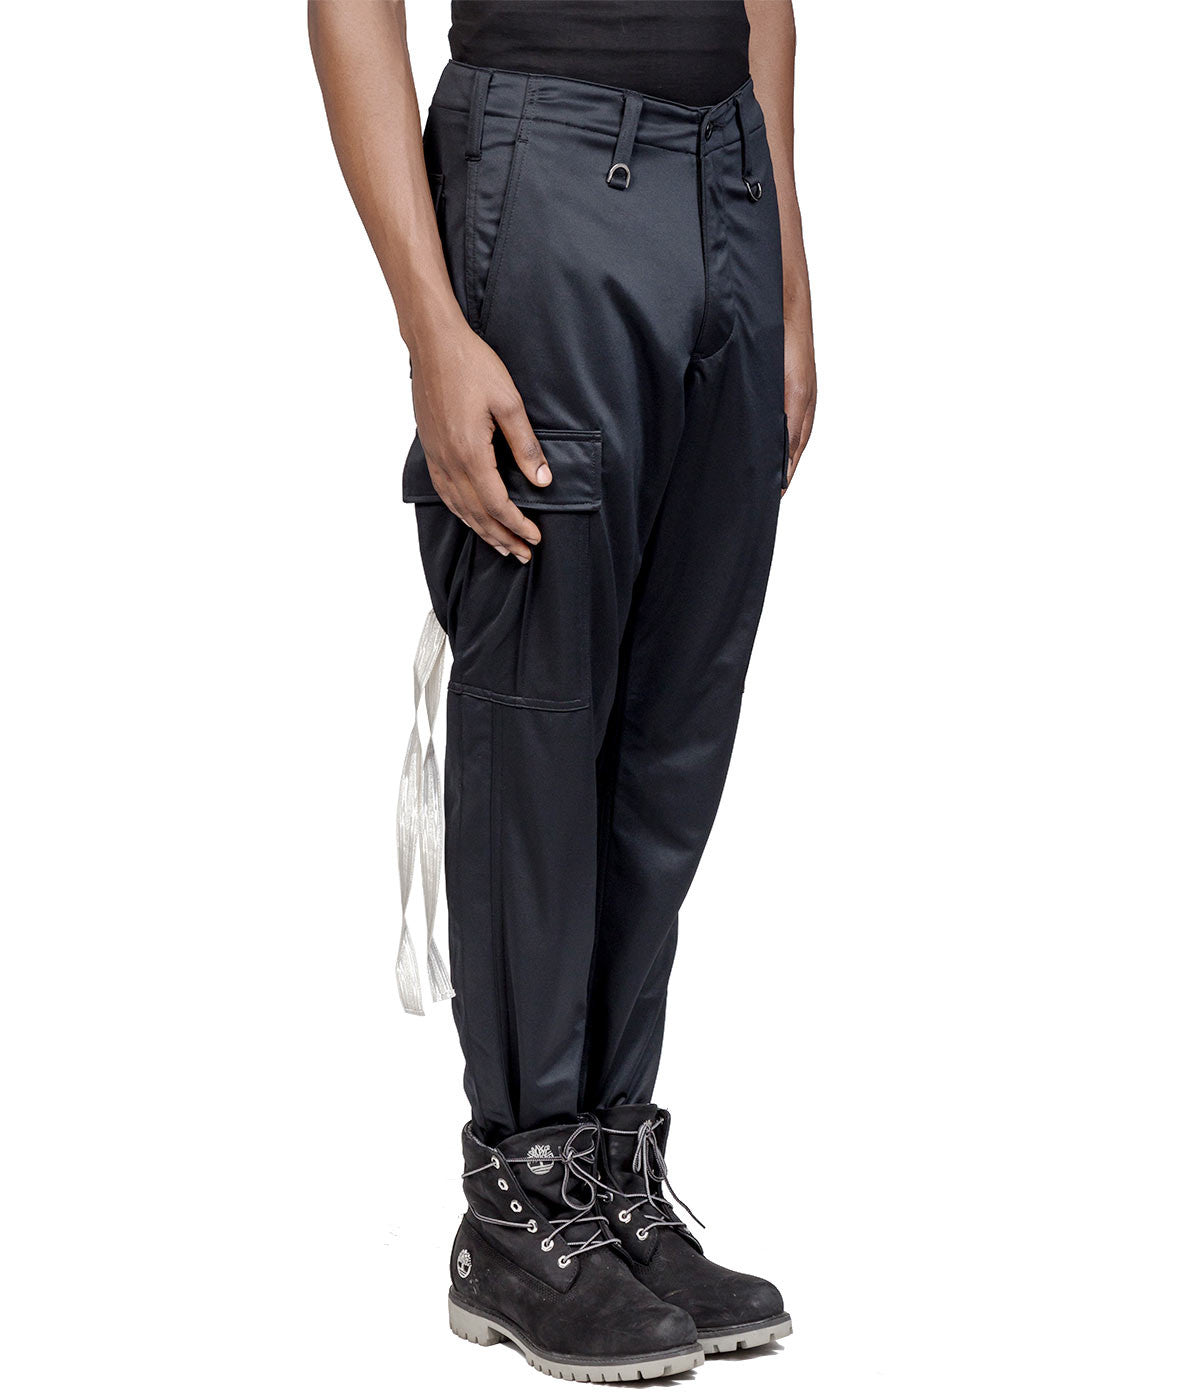 Black mastermind Feat. A-GIRL'S Cargo Pants